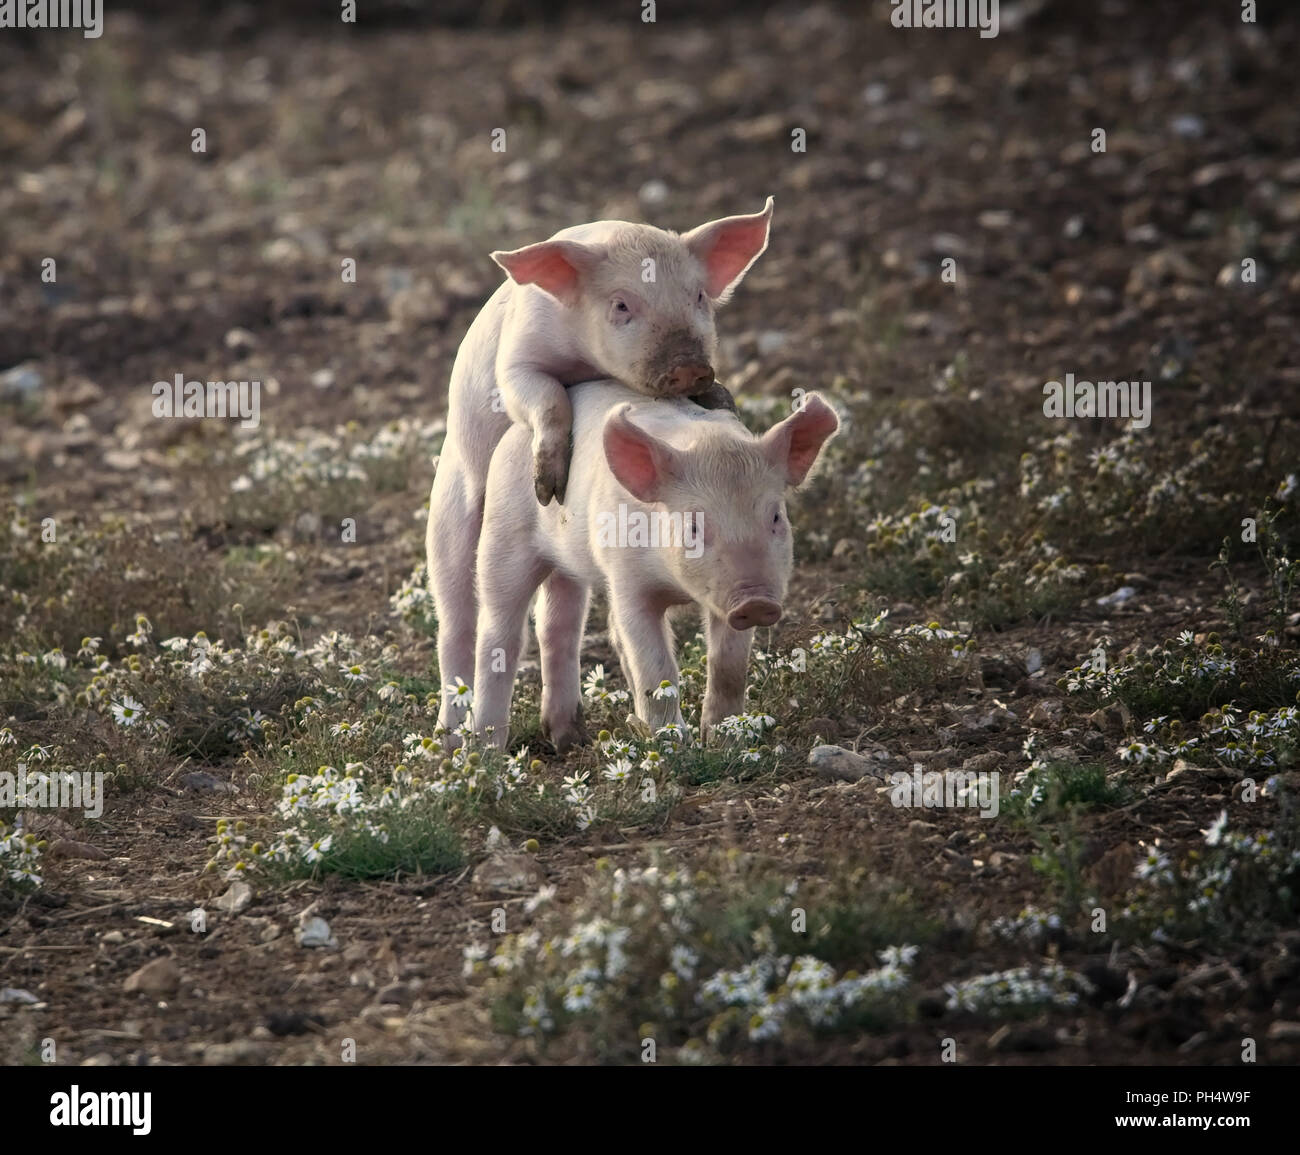 Piglets and Pigs - Stock Image